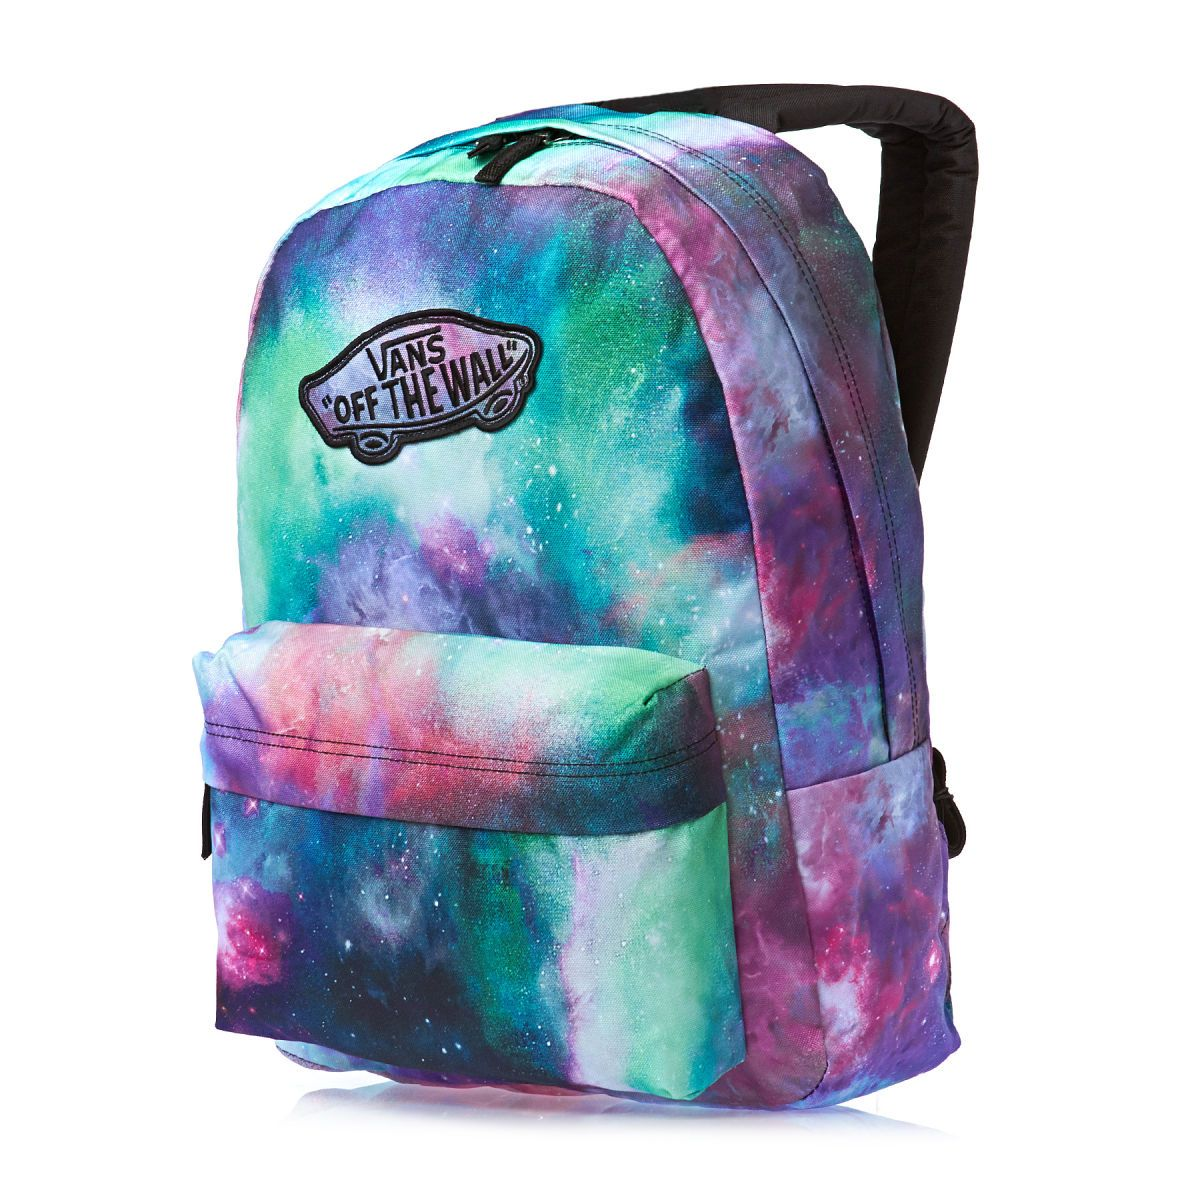 vans off the wall backpack backpacks vans backpack on off the wall id=38505